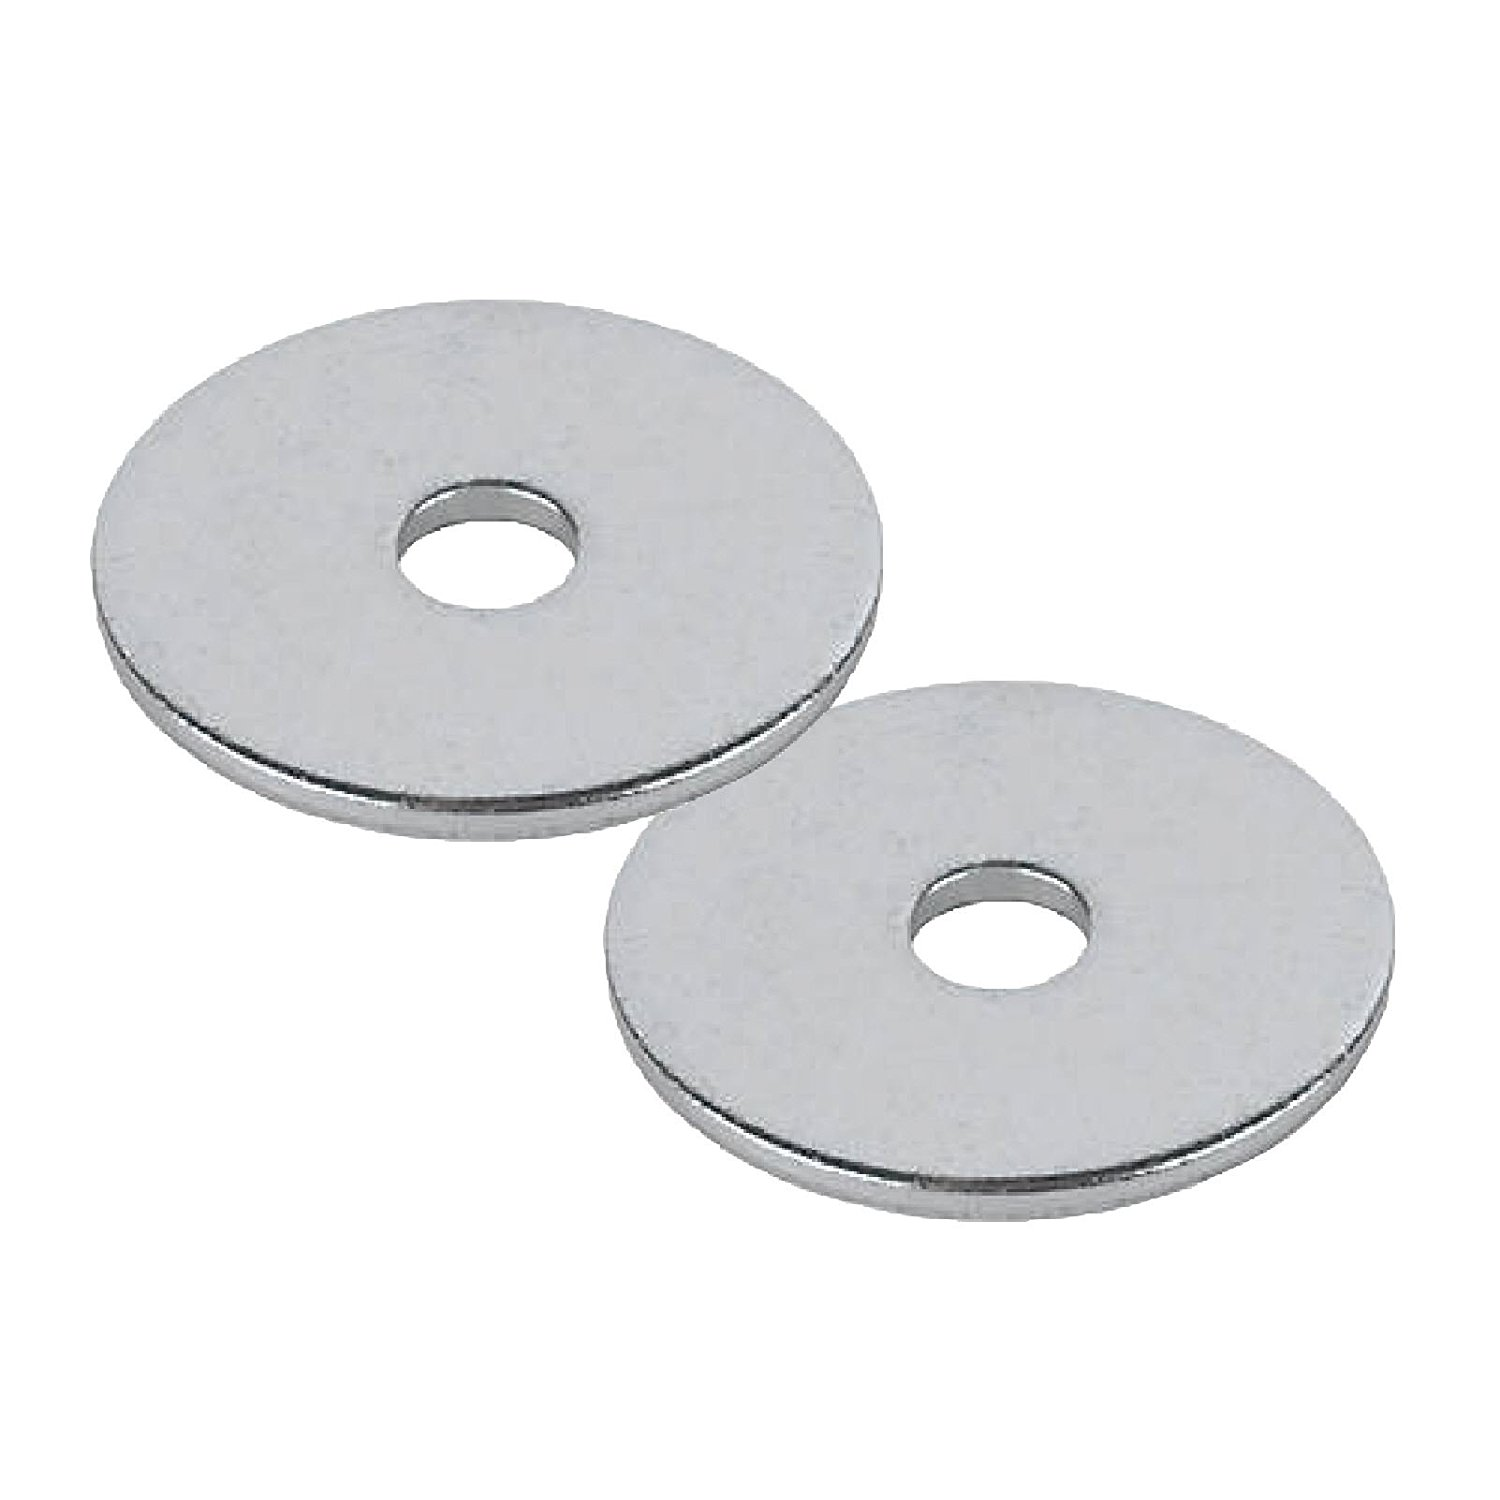 100 x Steel Backing Washers for 4.8mm Blind Pop Rivets M5 x 25mm Bright Zinc Plated